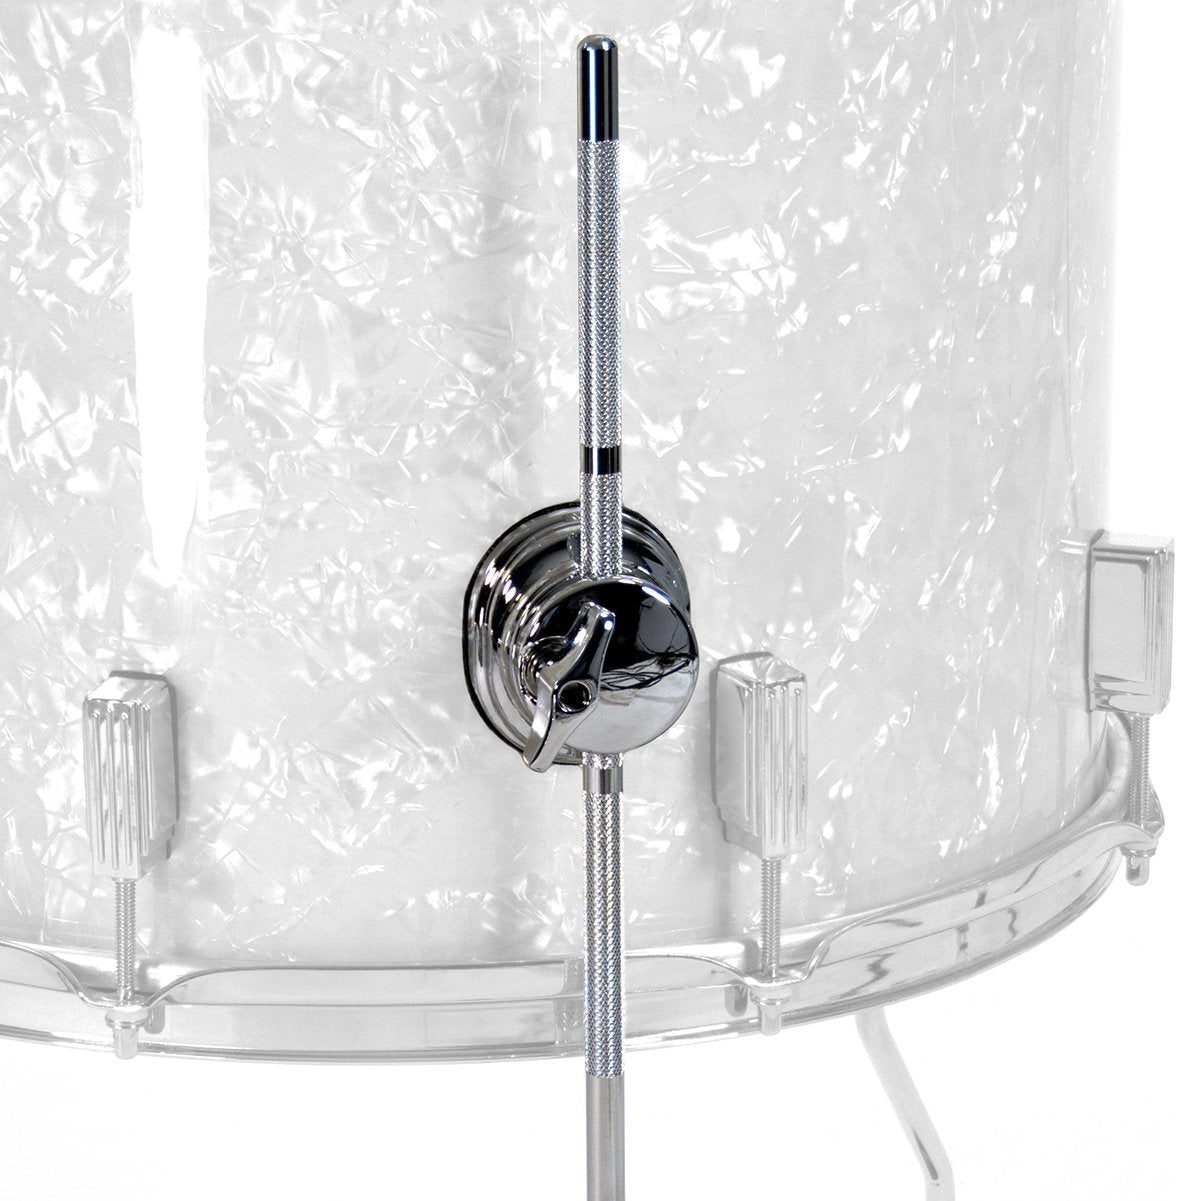 16″ x 18″ Generations Maple Floor Tom